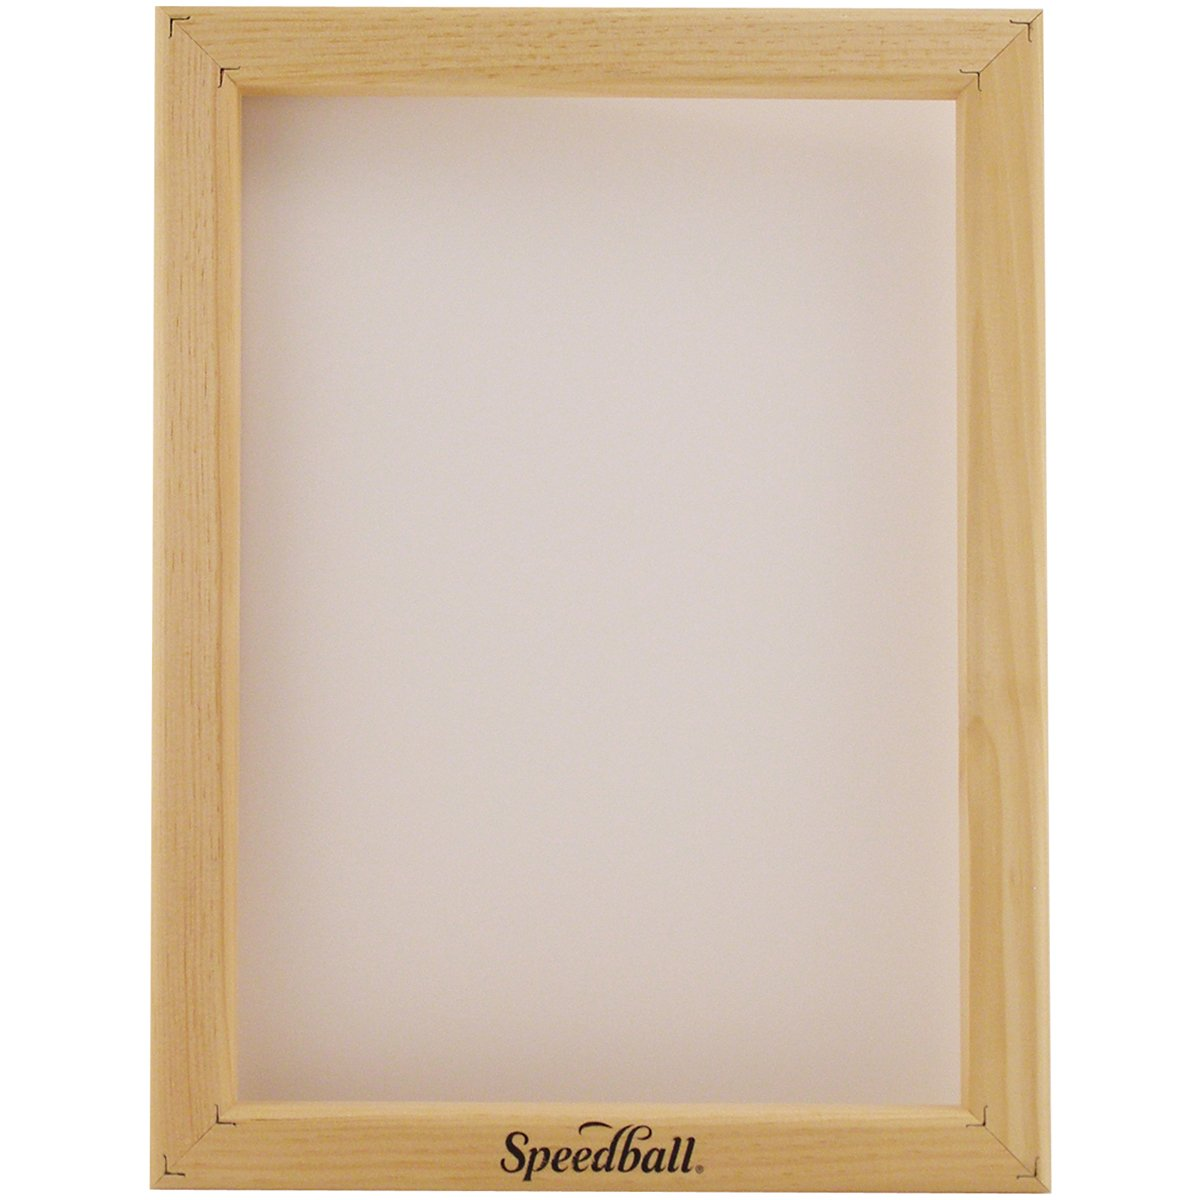 Speedball 4712  10-Inch-by-14-Inch Screen Printing Frame by Speedball